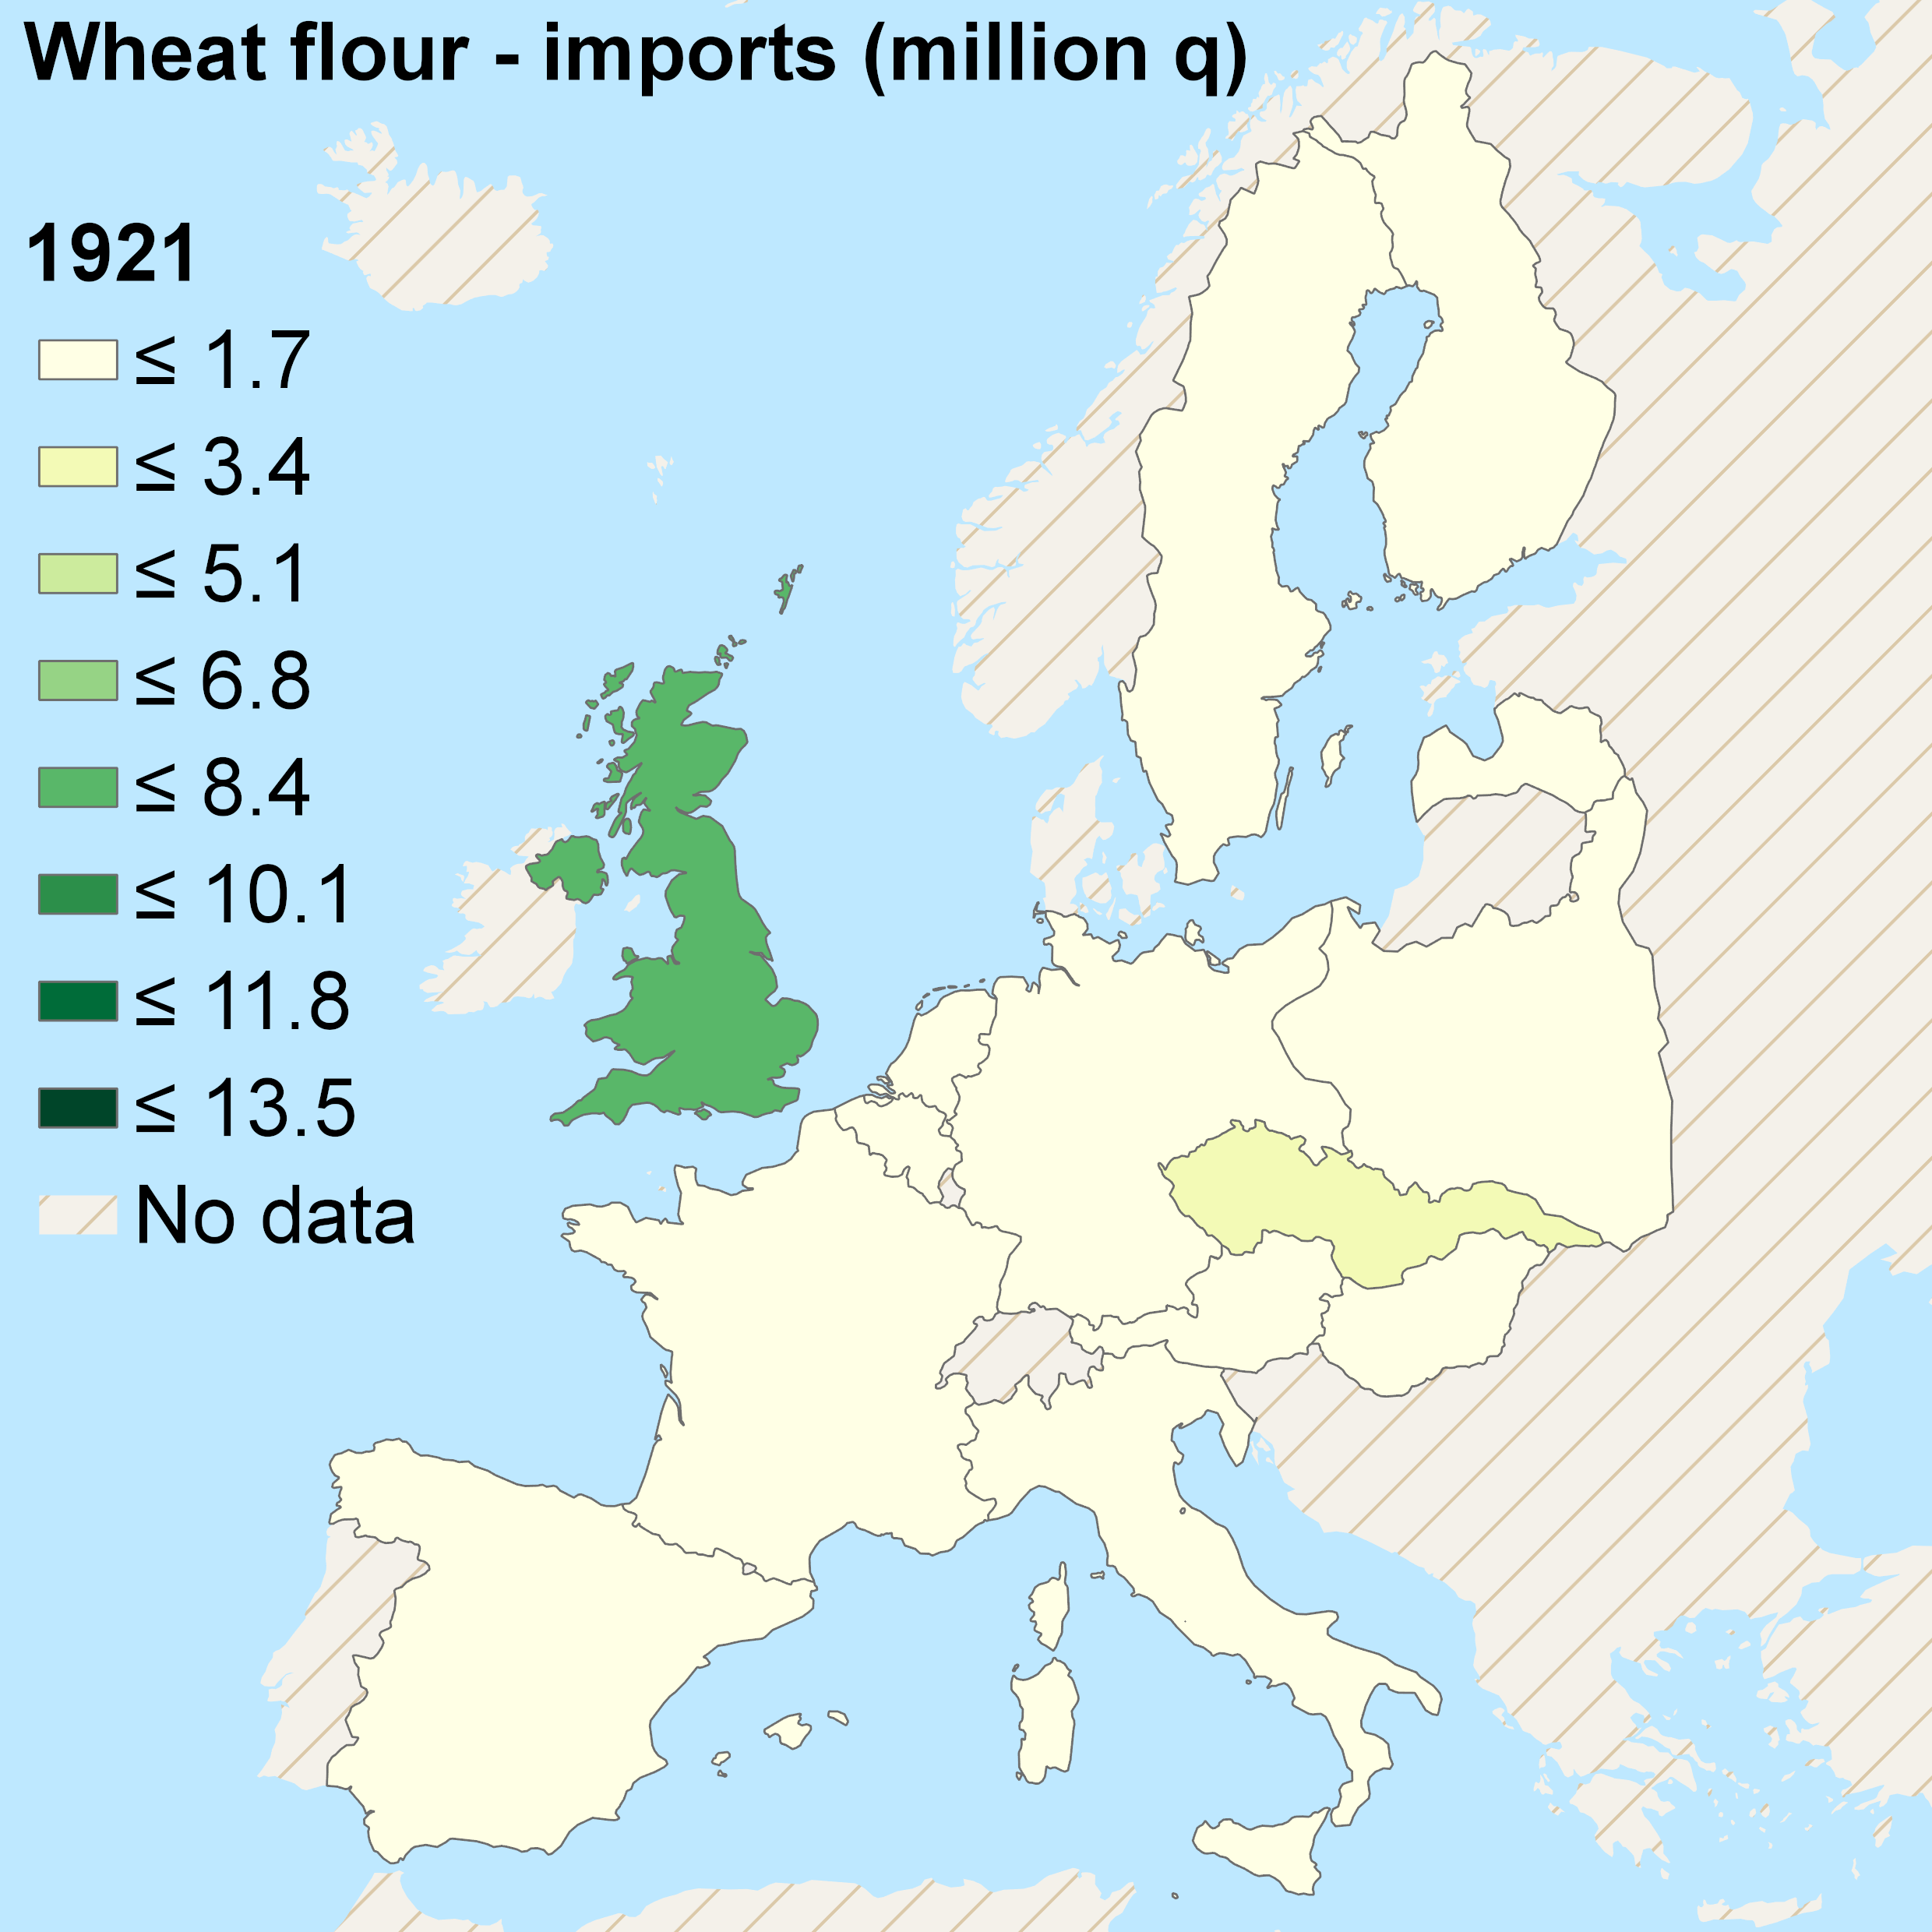 wheat-flour-imports-1921-v2